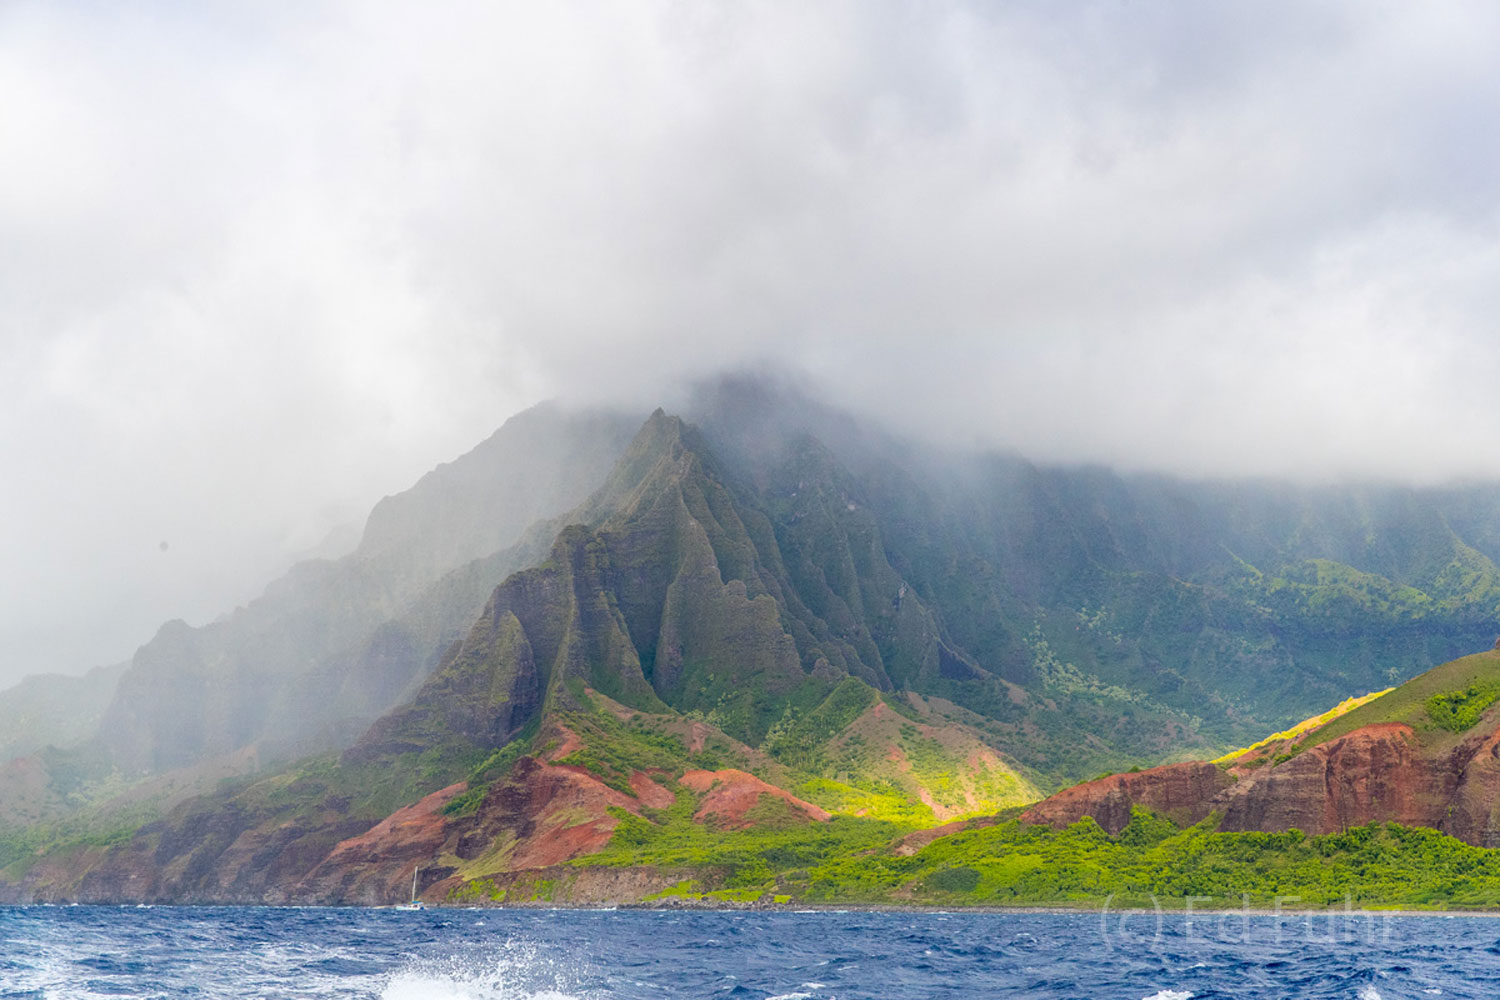 Sailing past Kauai's Na Pali coastline is the only way to appreciate and really see its rich colors, size and splendor.